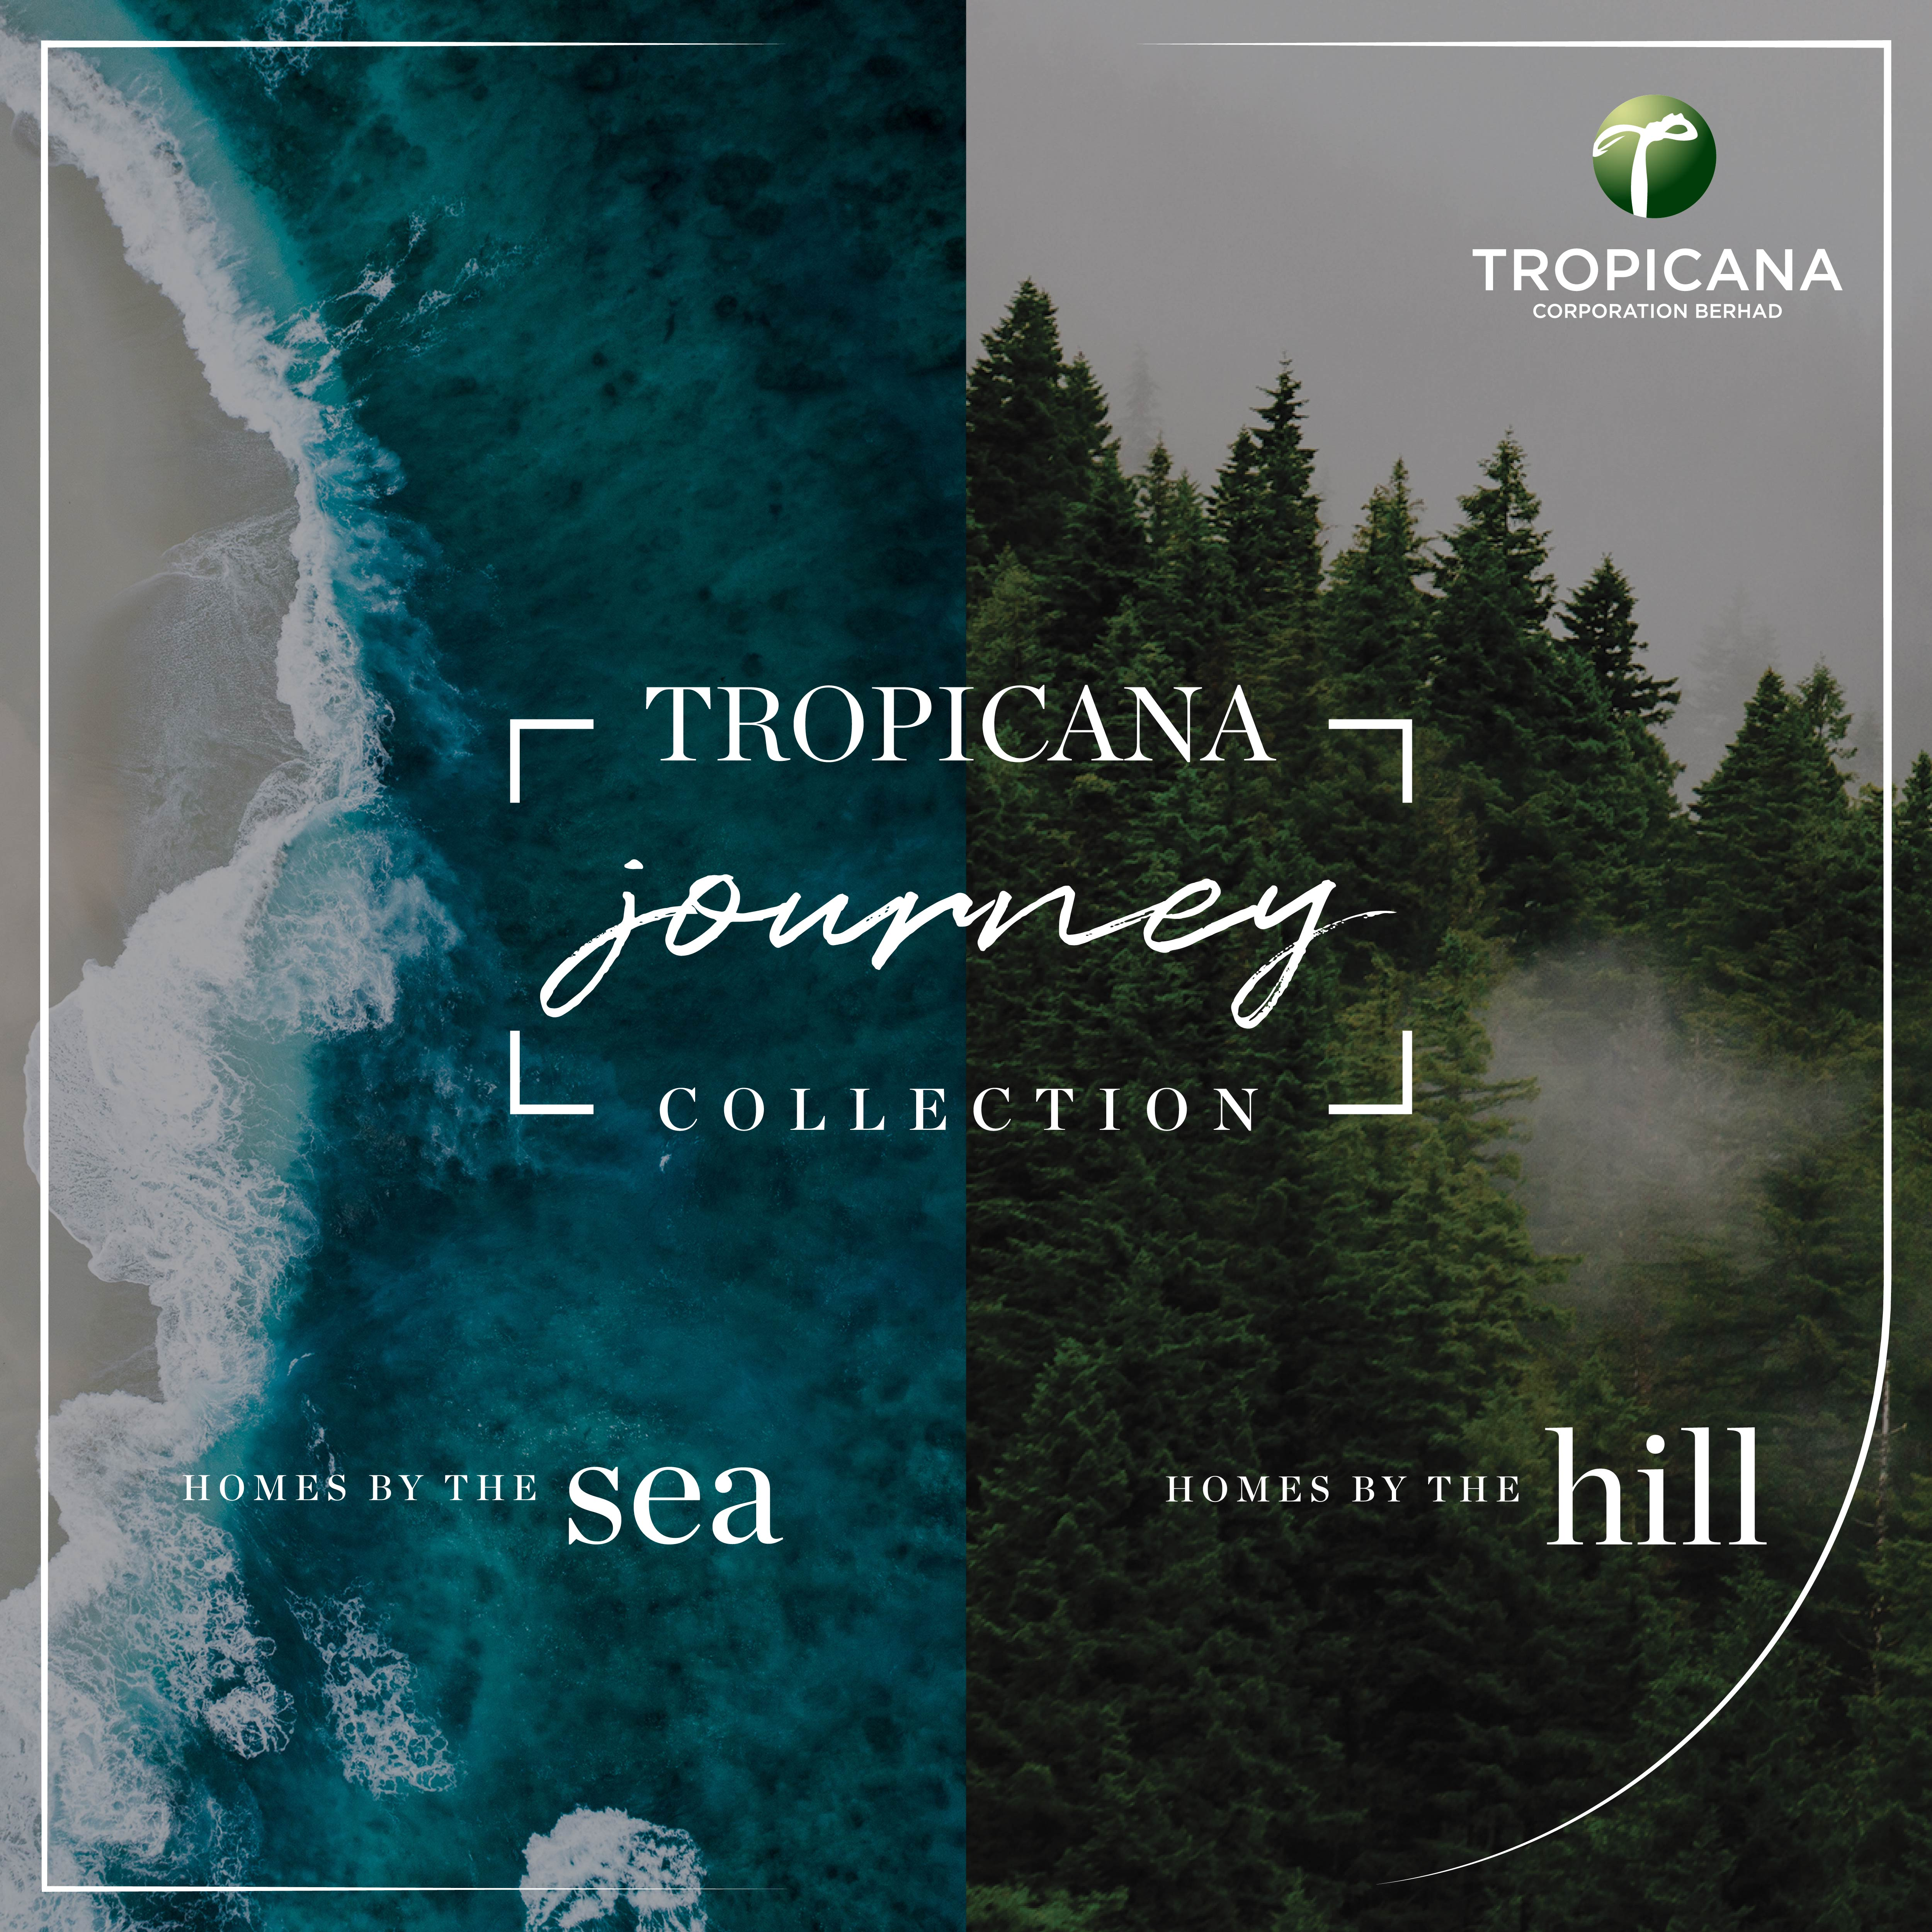 Tropicana Journey Collection